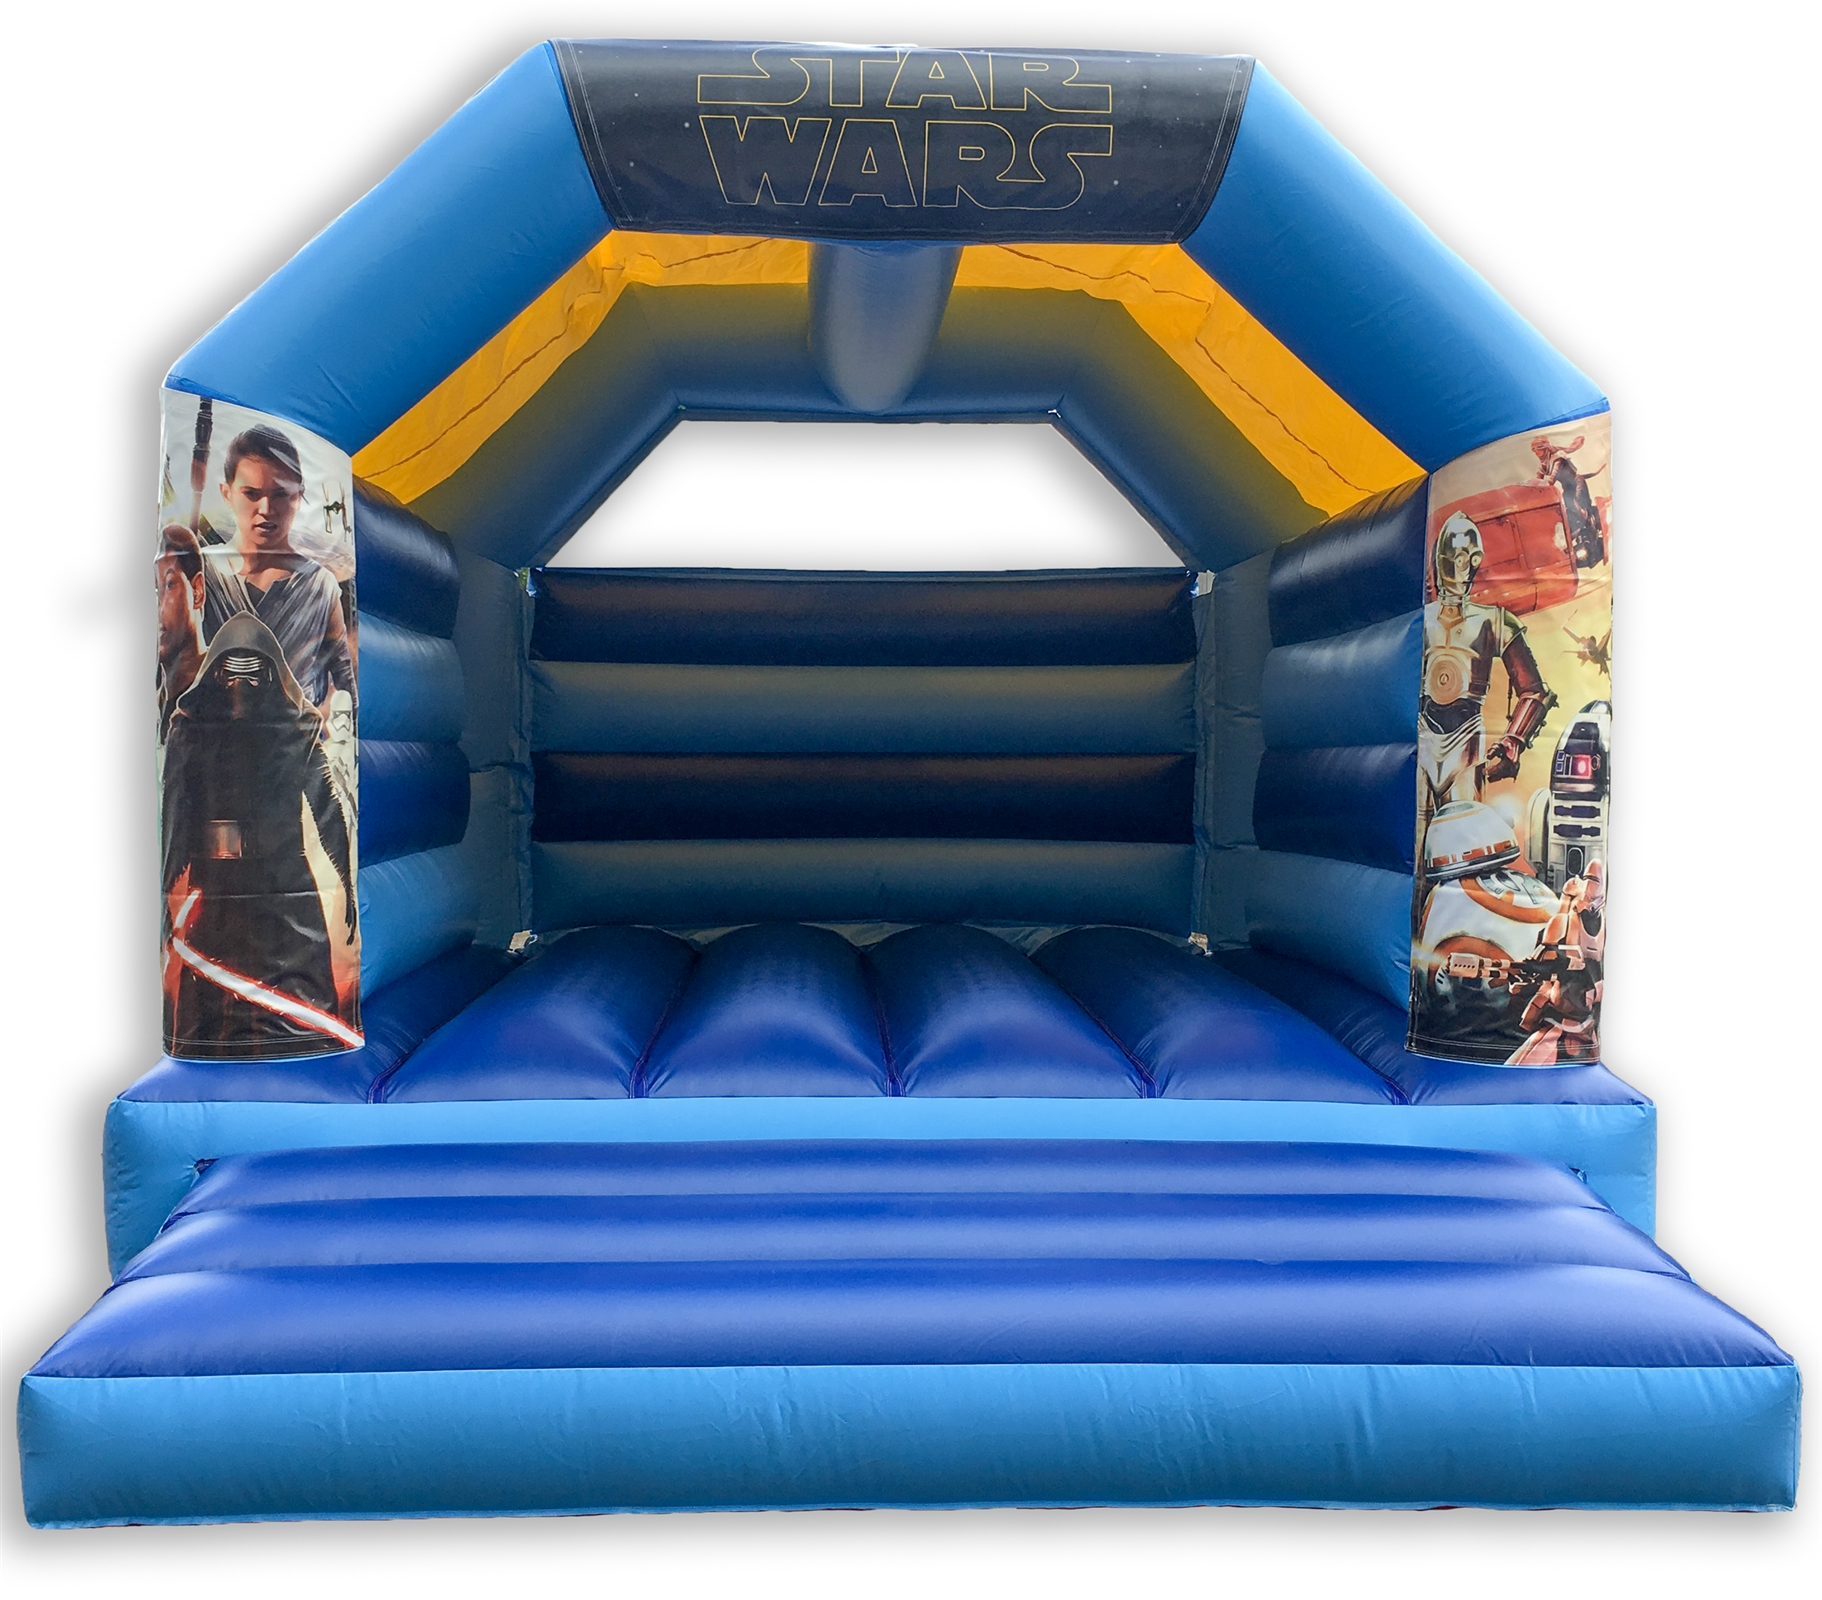 Inflatable Slide Hire Uk: Bouncy Castle Hire In Bath, Frome